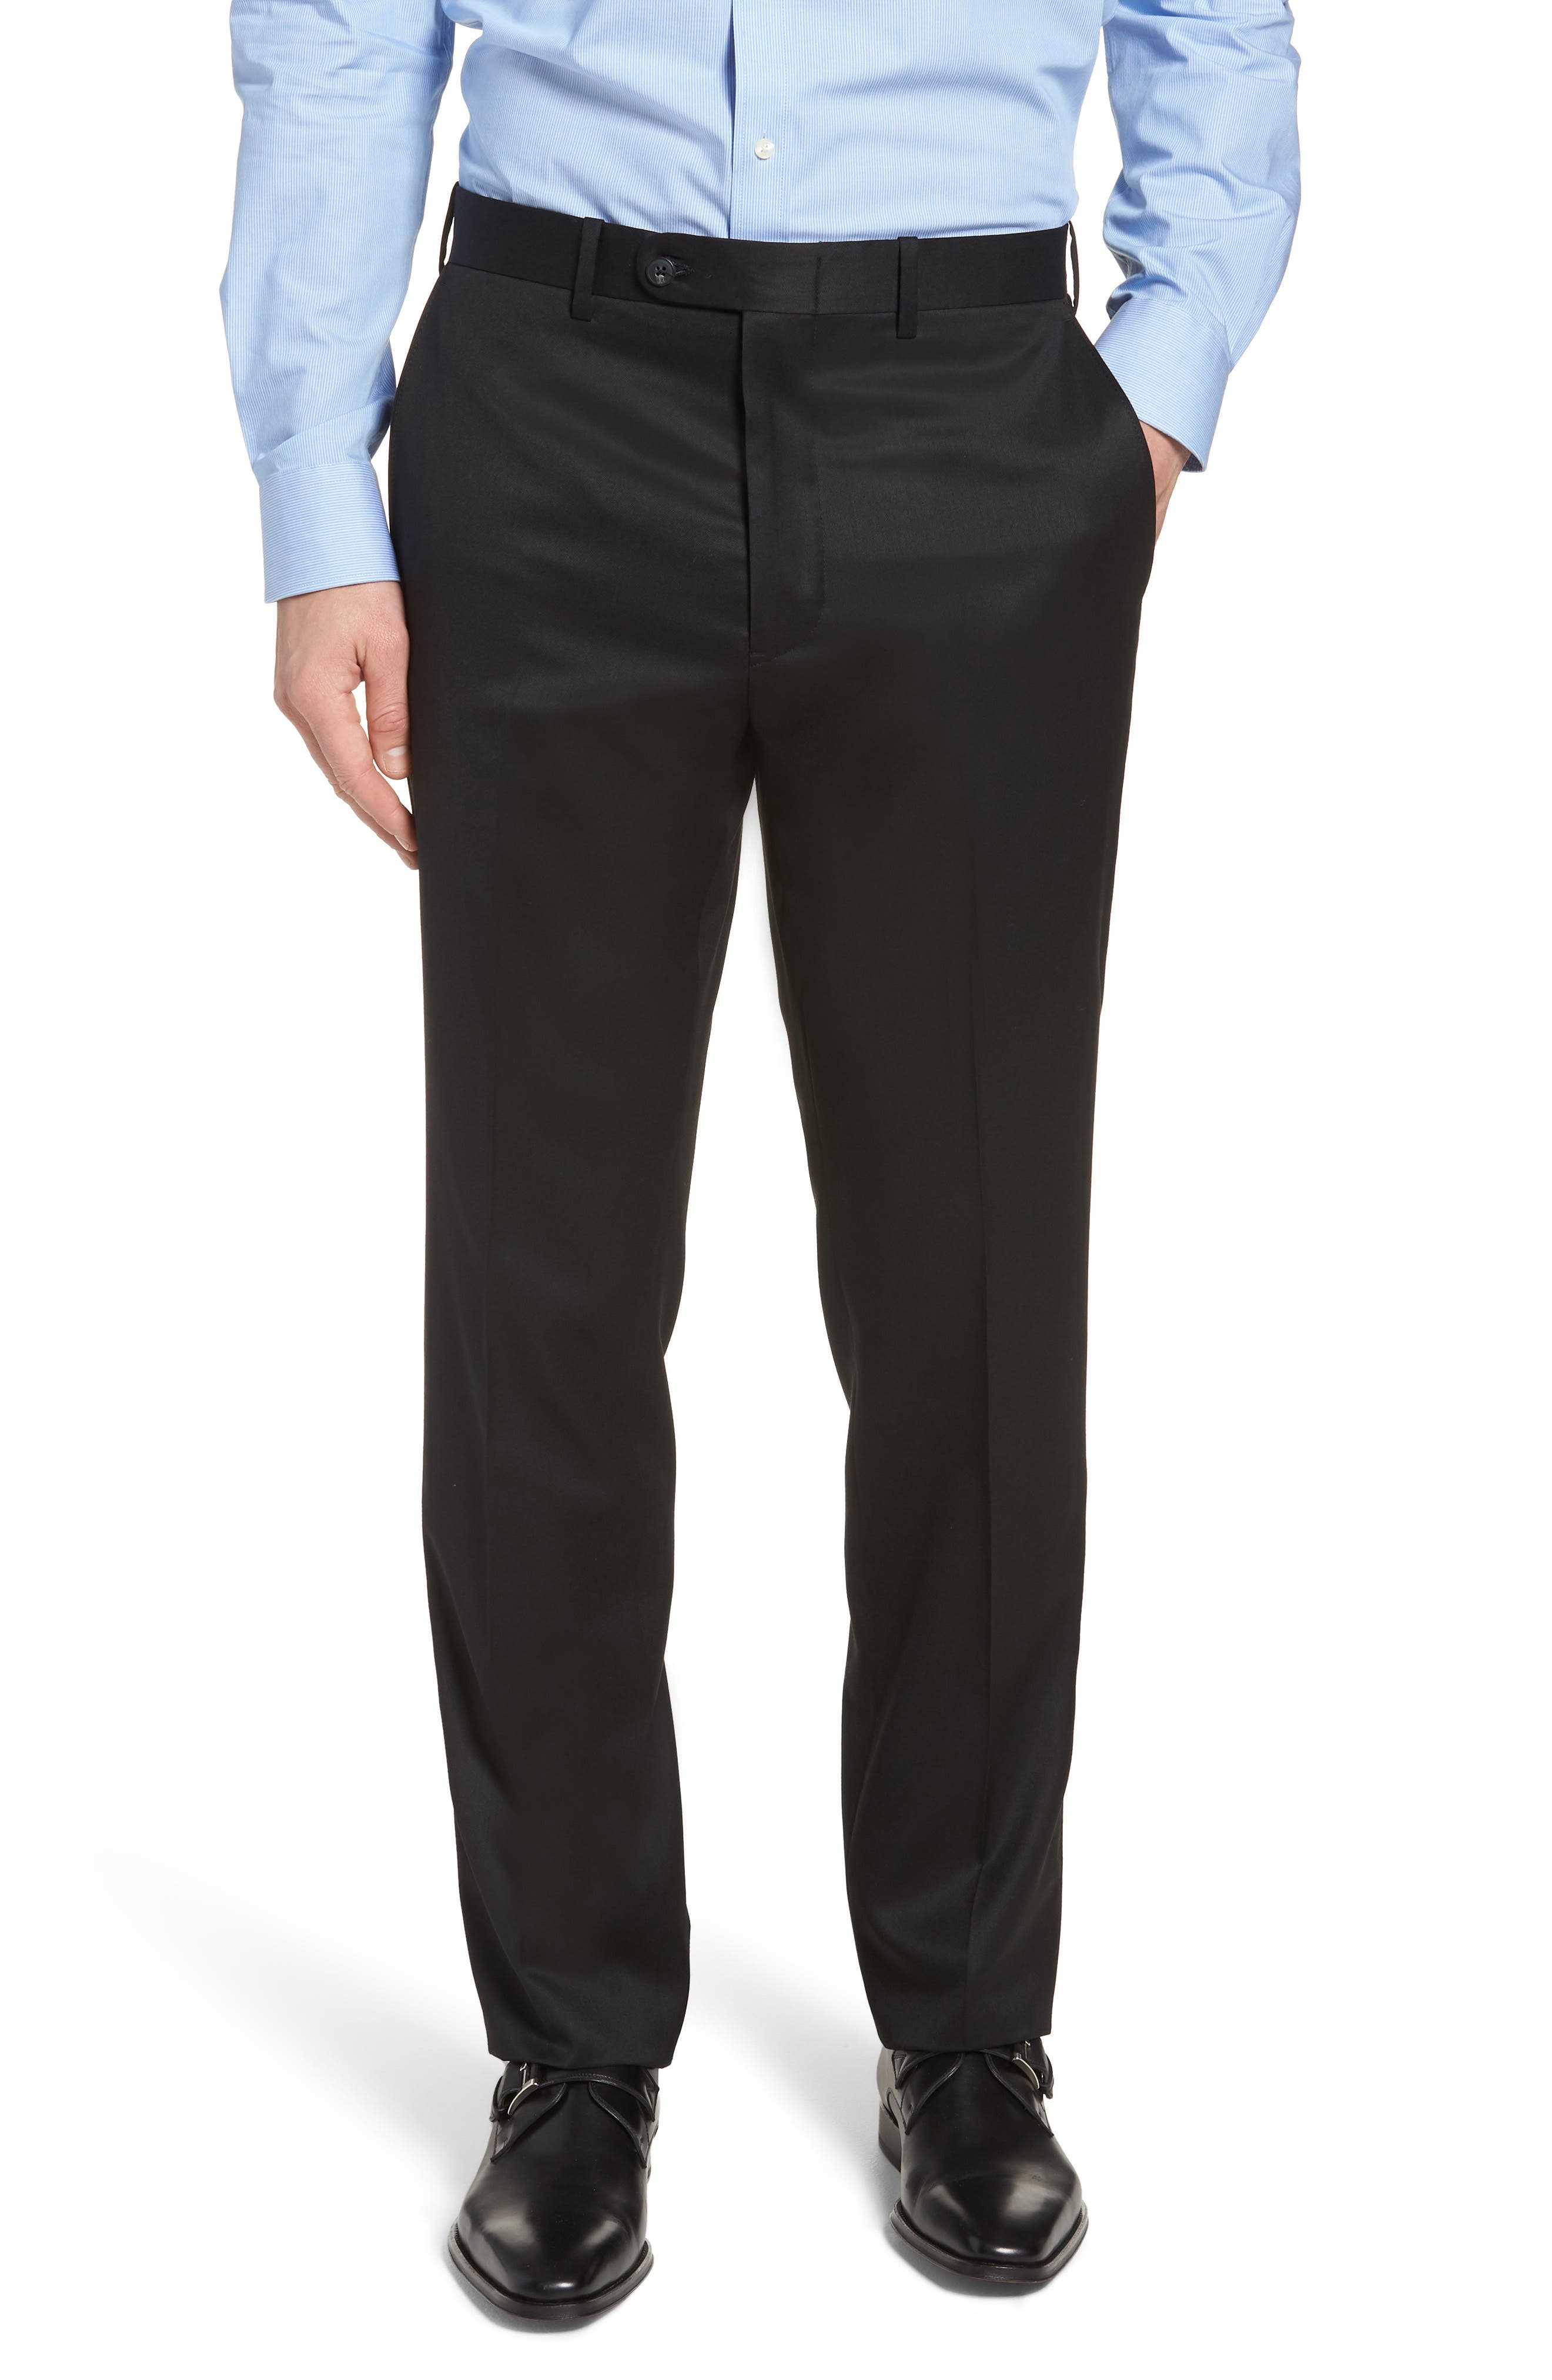 JOHN W. NORDSTROM<SUP>®</SUP> Torino Traditional Fit Flat Front Solid Trousers, Main, color, BLACK